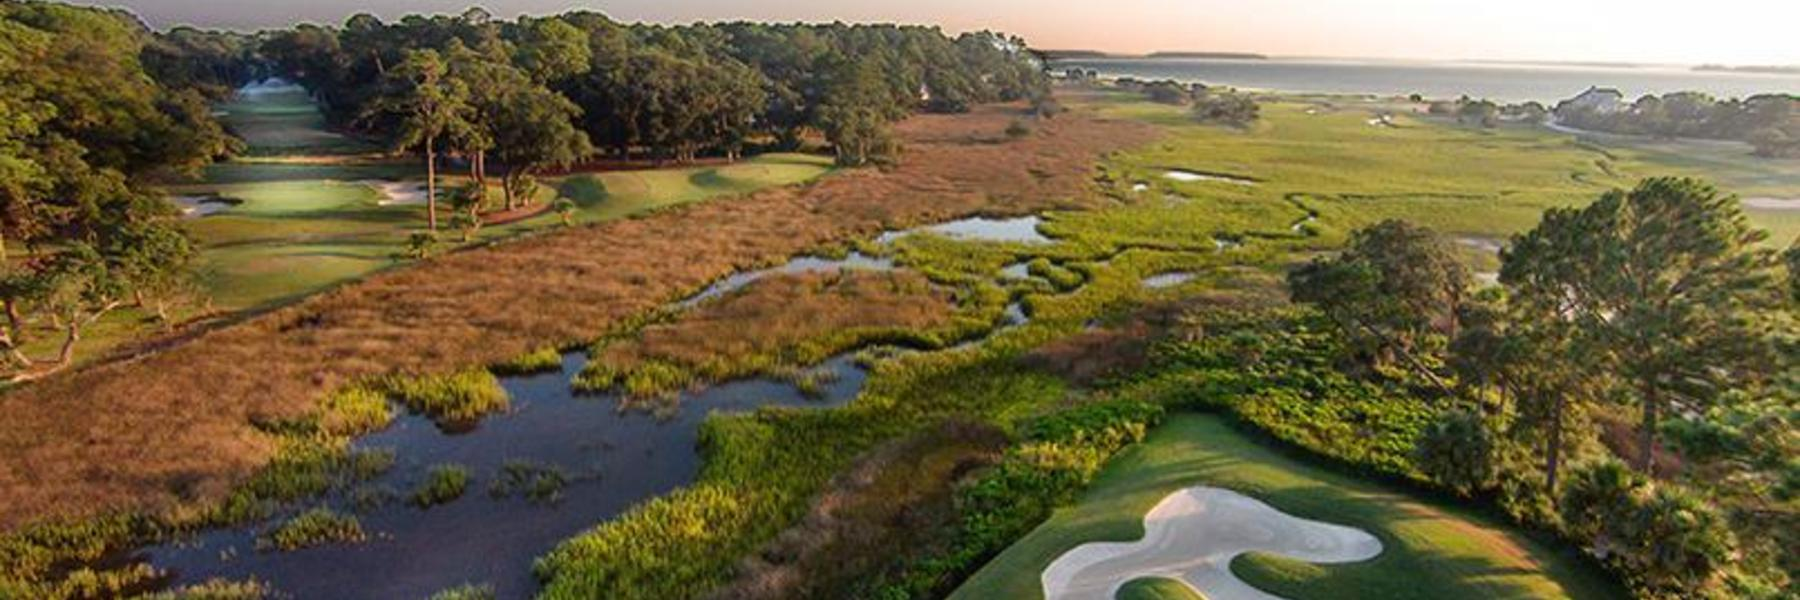 Golf Vacation Package - Play the Best of the Best in Hilton Head This Winter!